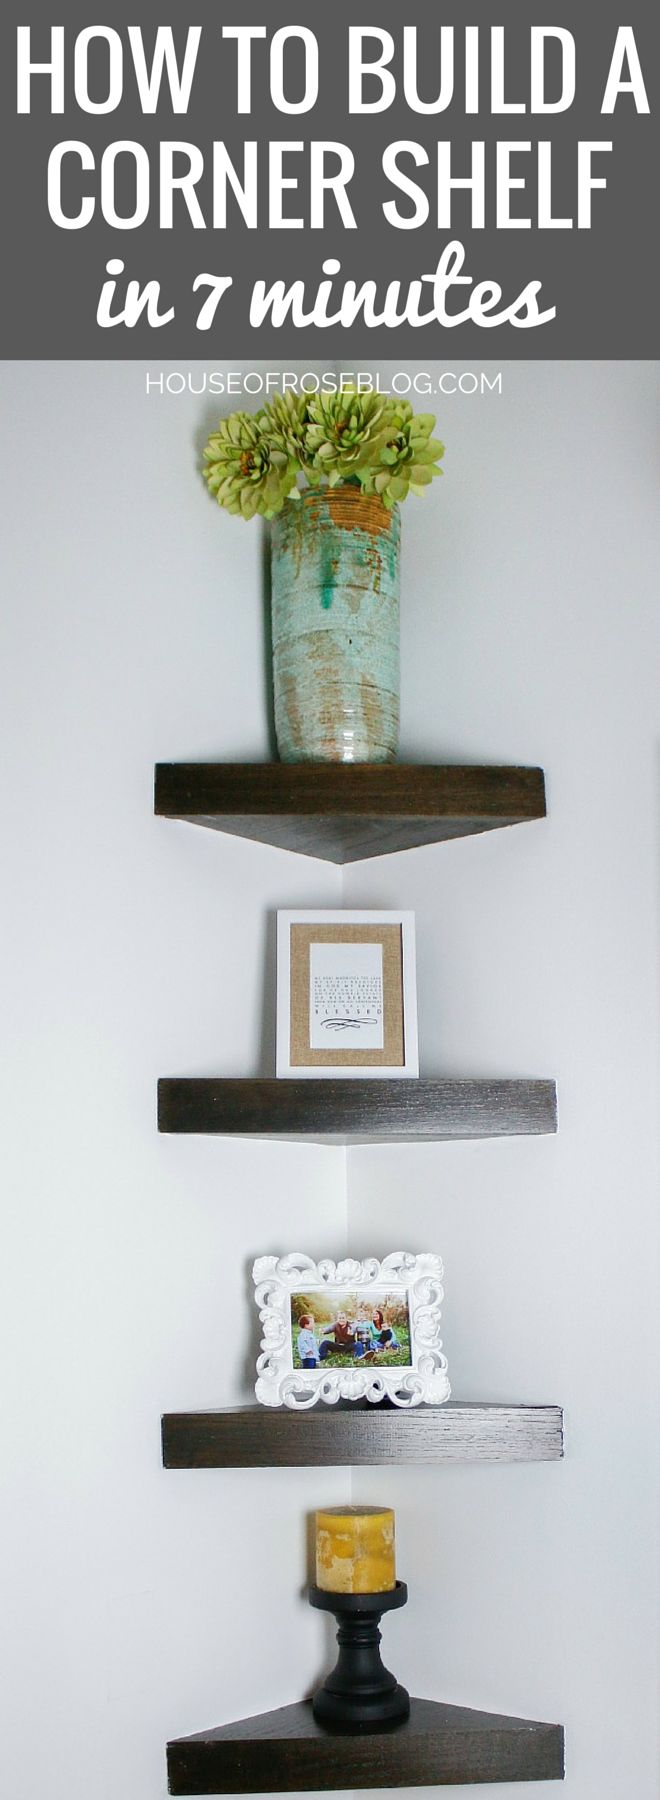 HOW TO BUILD A CORNER SHELF IN 7 MINUTES by HOUSEOFROSEBLOG.COM